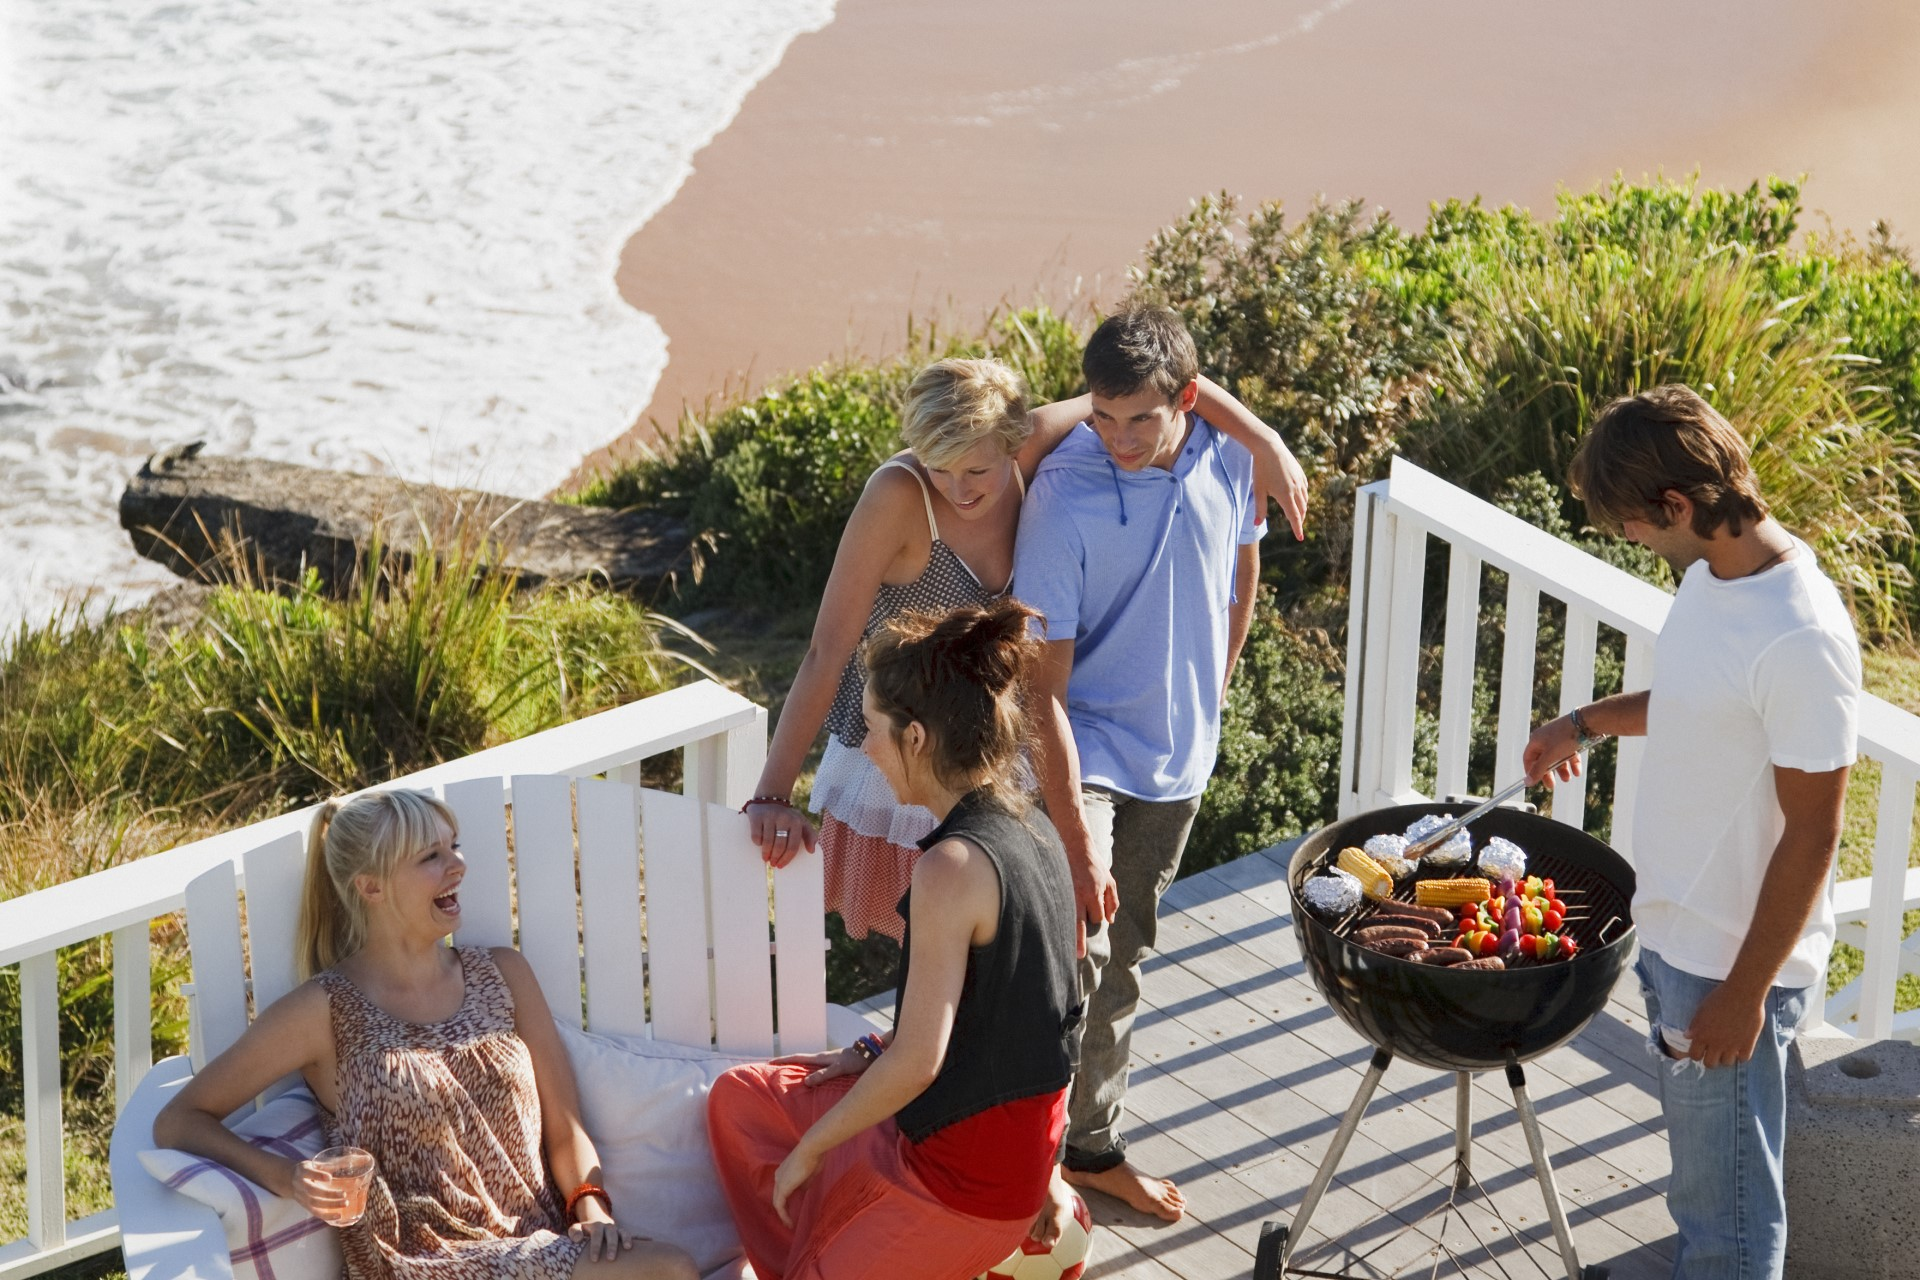 Forget Outback! This is what Australians really eat